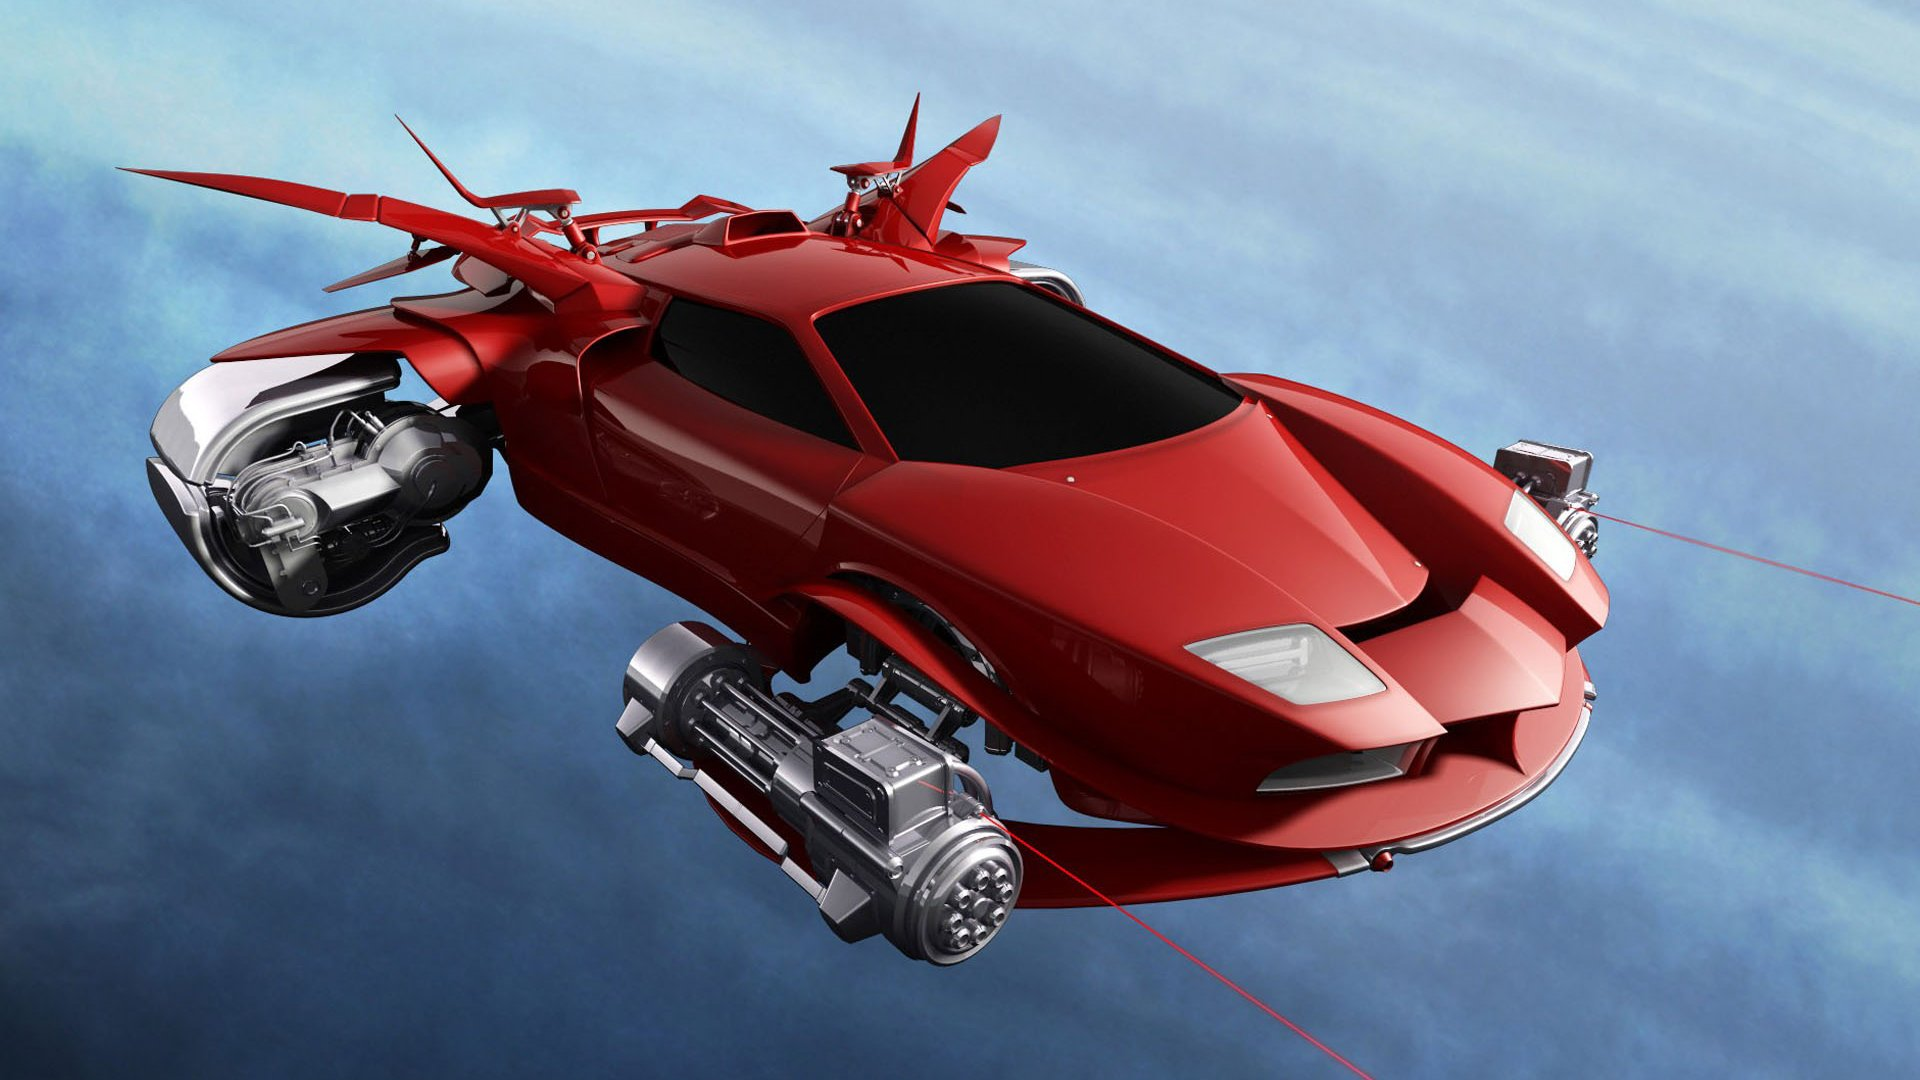 Download Download Flying Car Hd Wallpaper Unique Hd Wallpapers